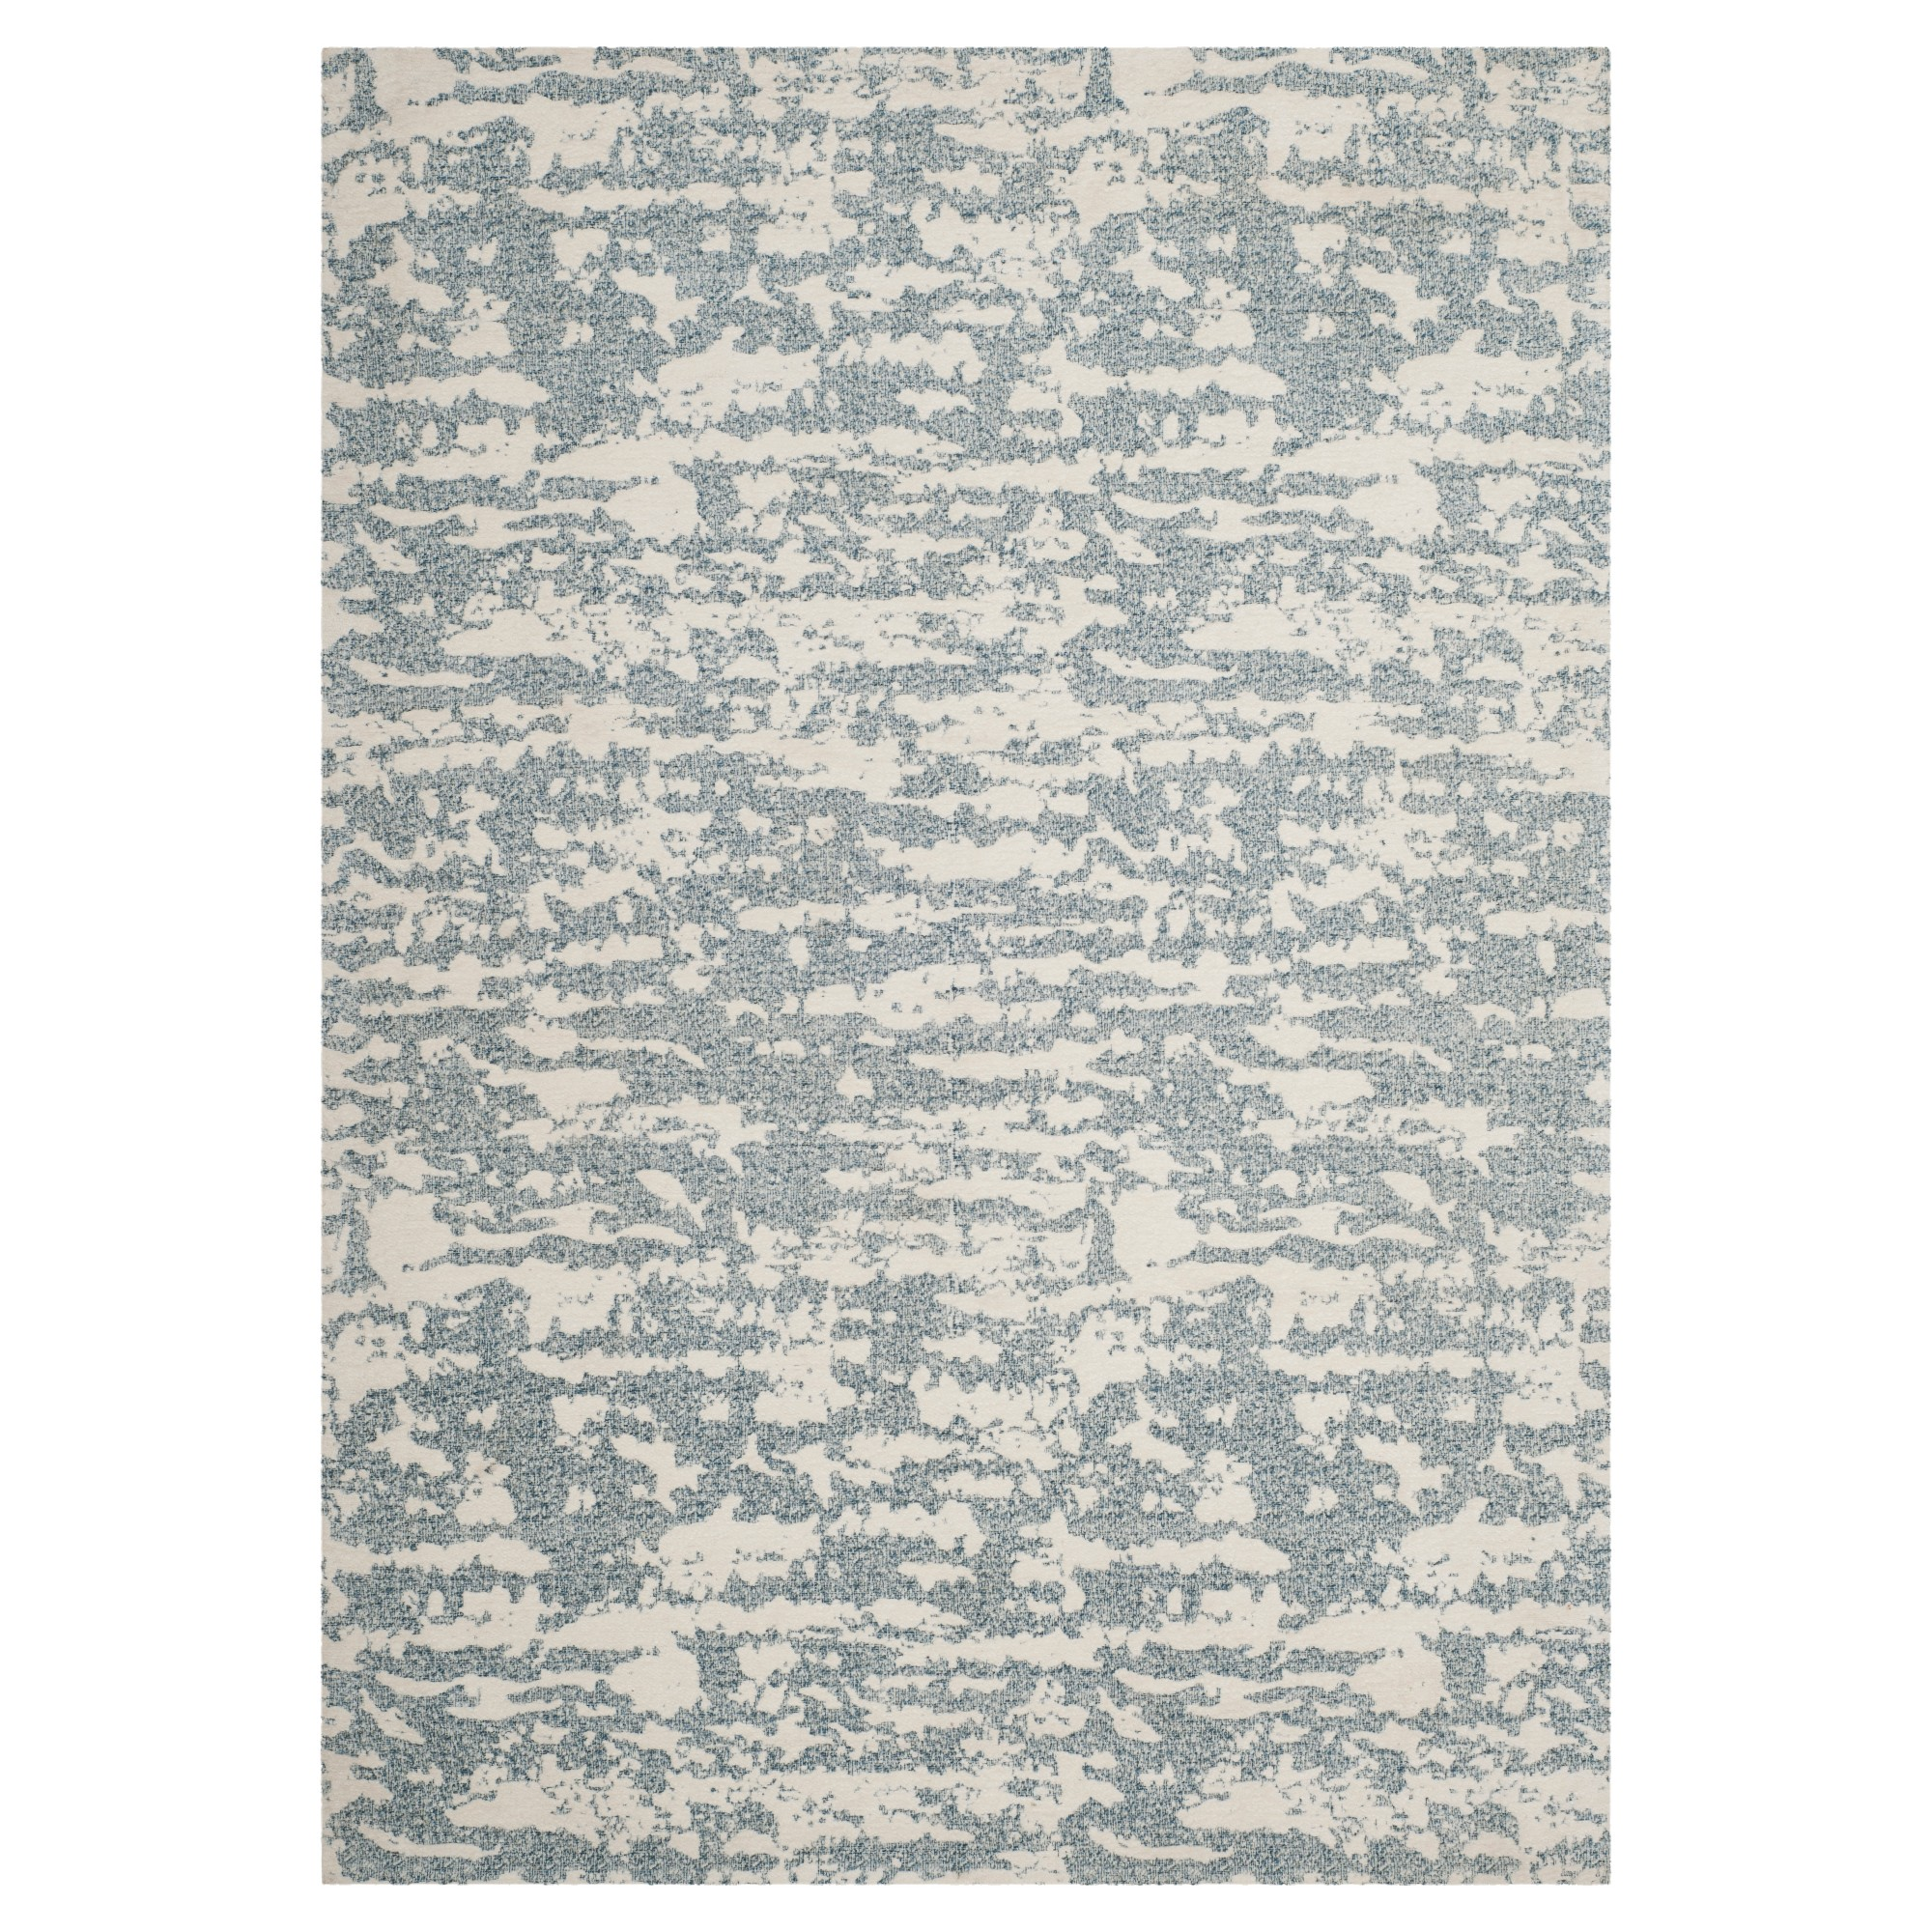 Blue/Ivory Spacedye Design Woven Area Rug 4'X6' - Safavieh